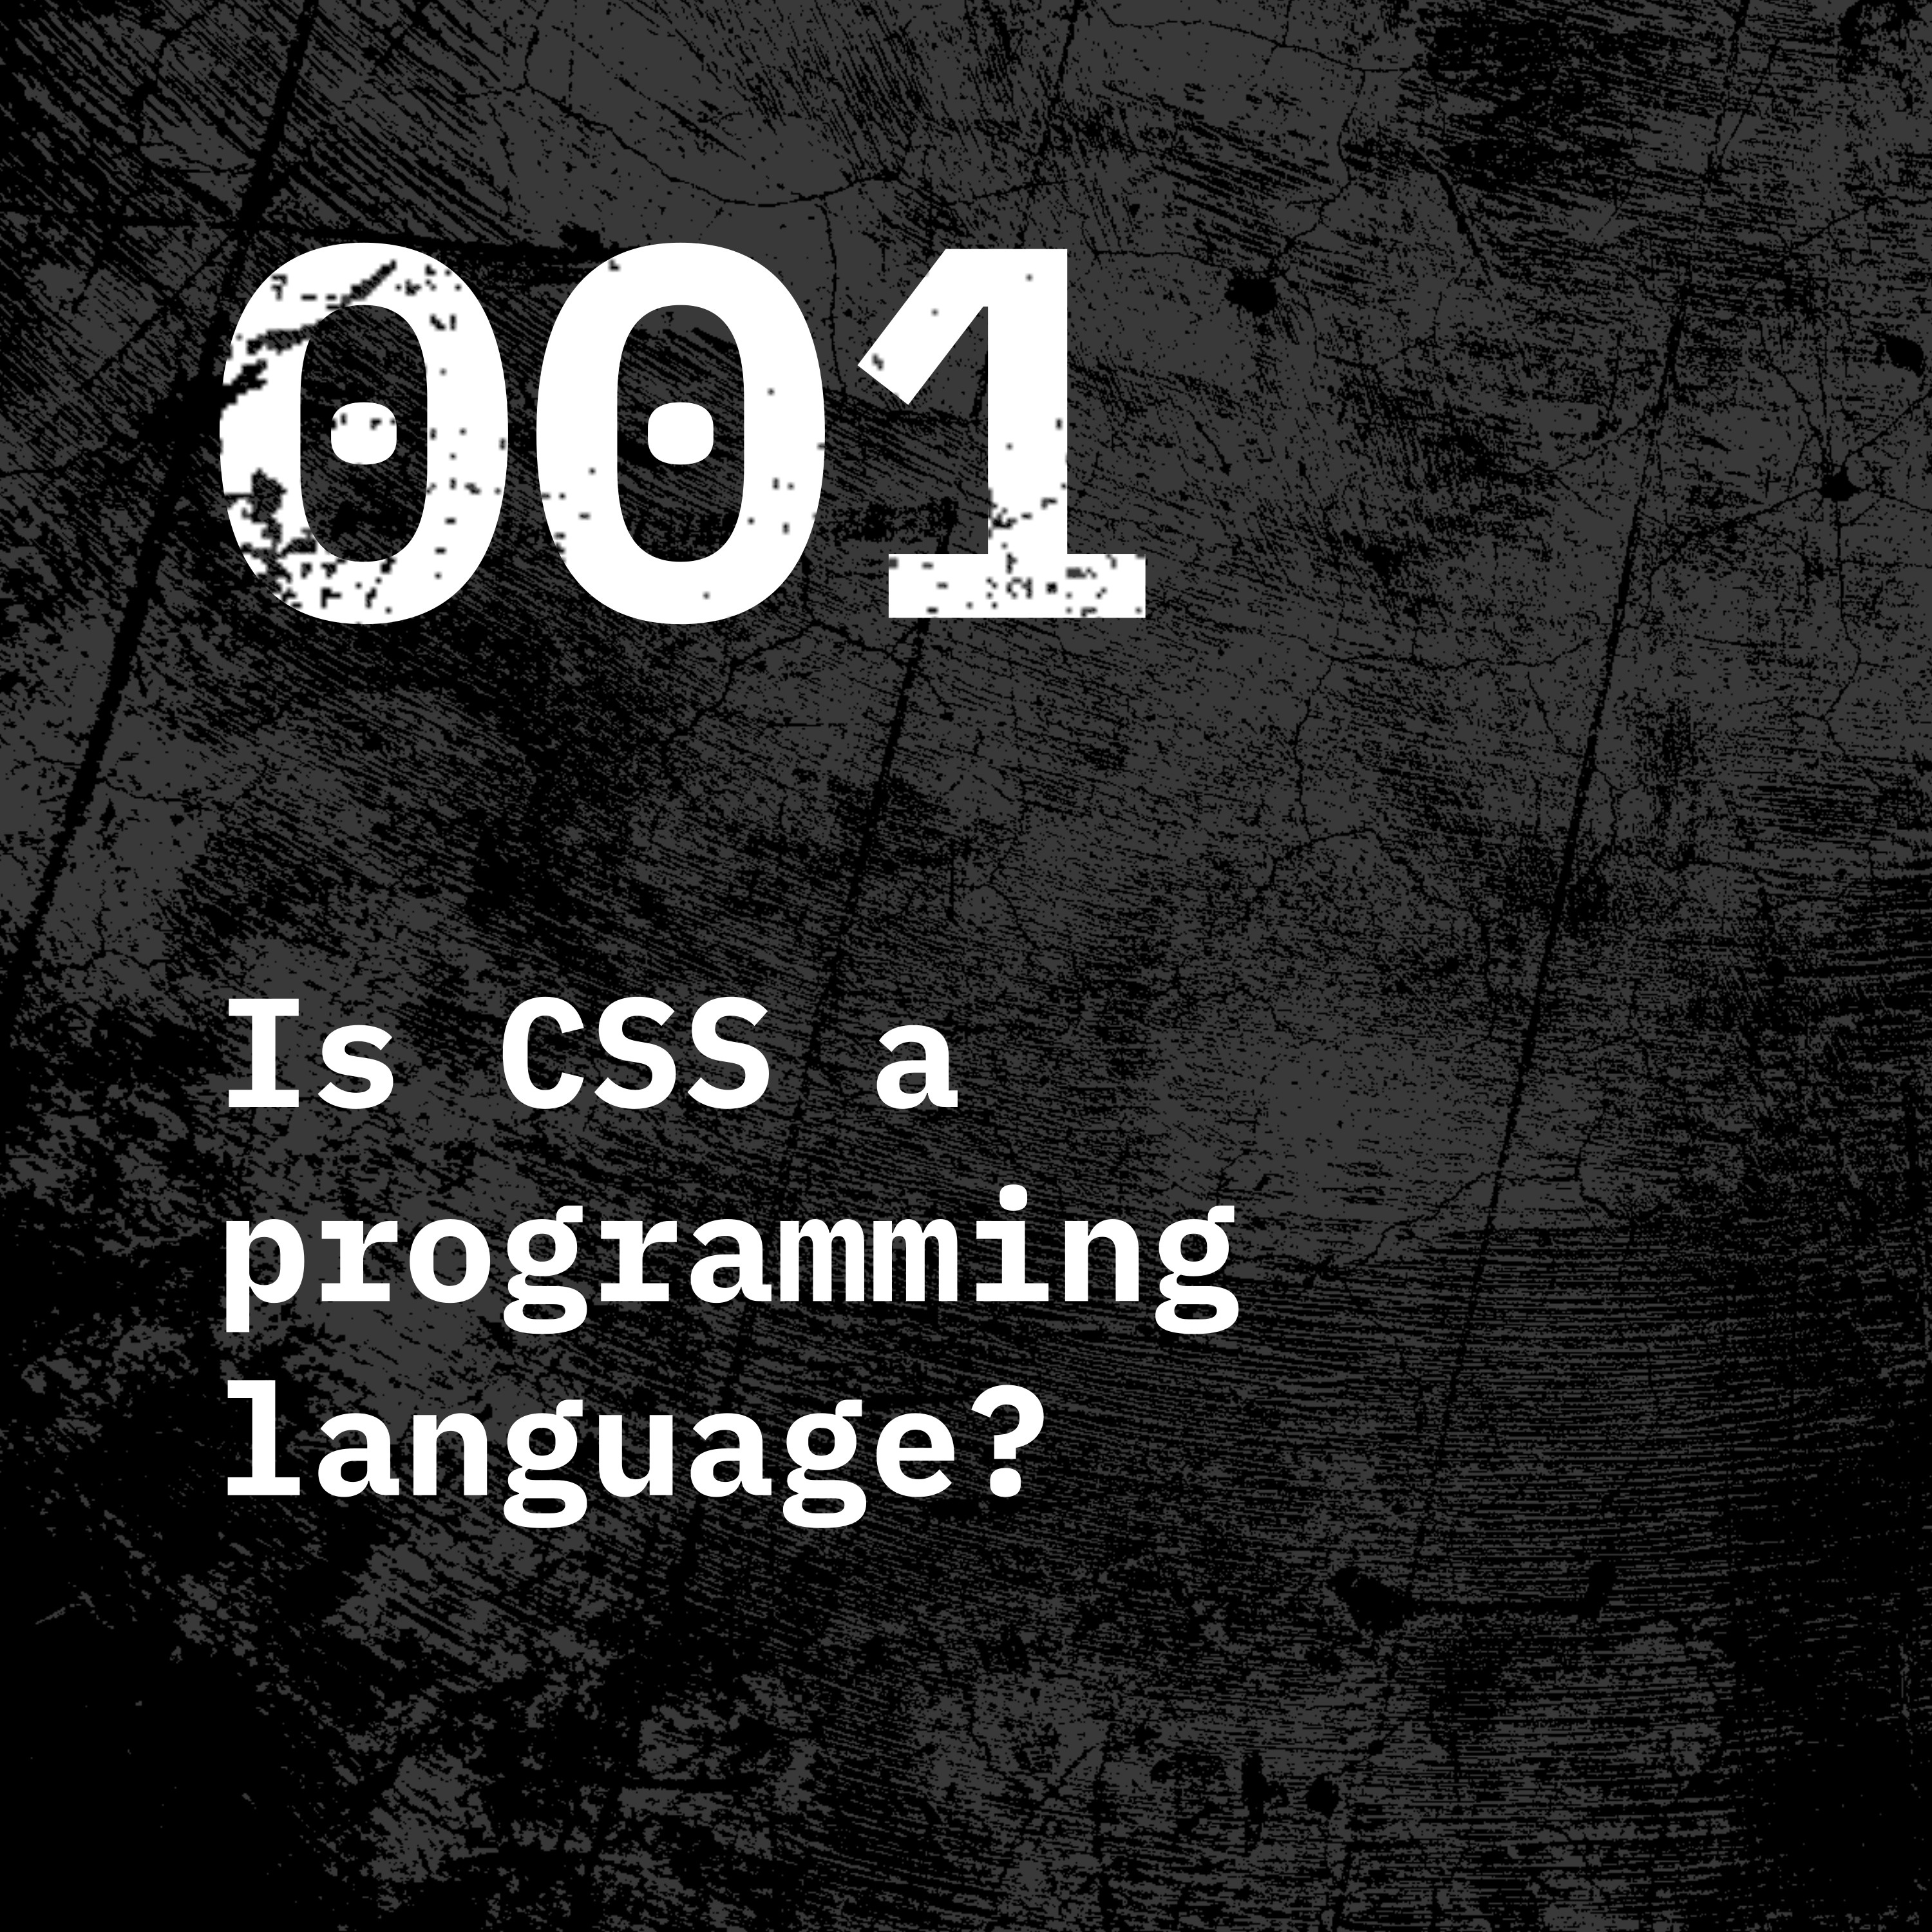 Is CSS a programming language?